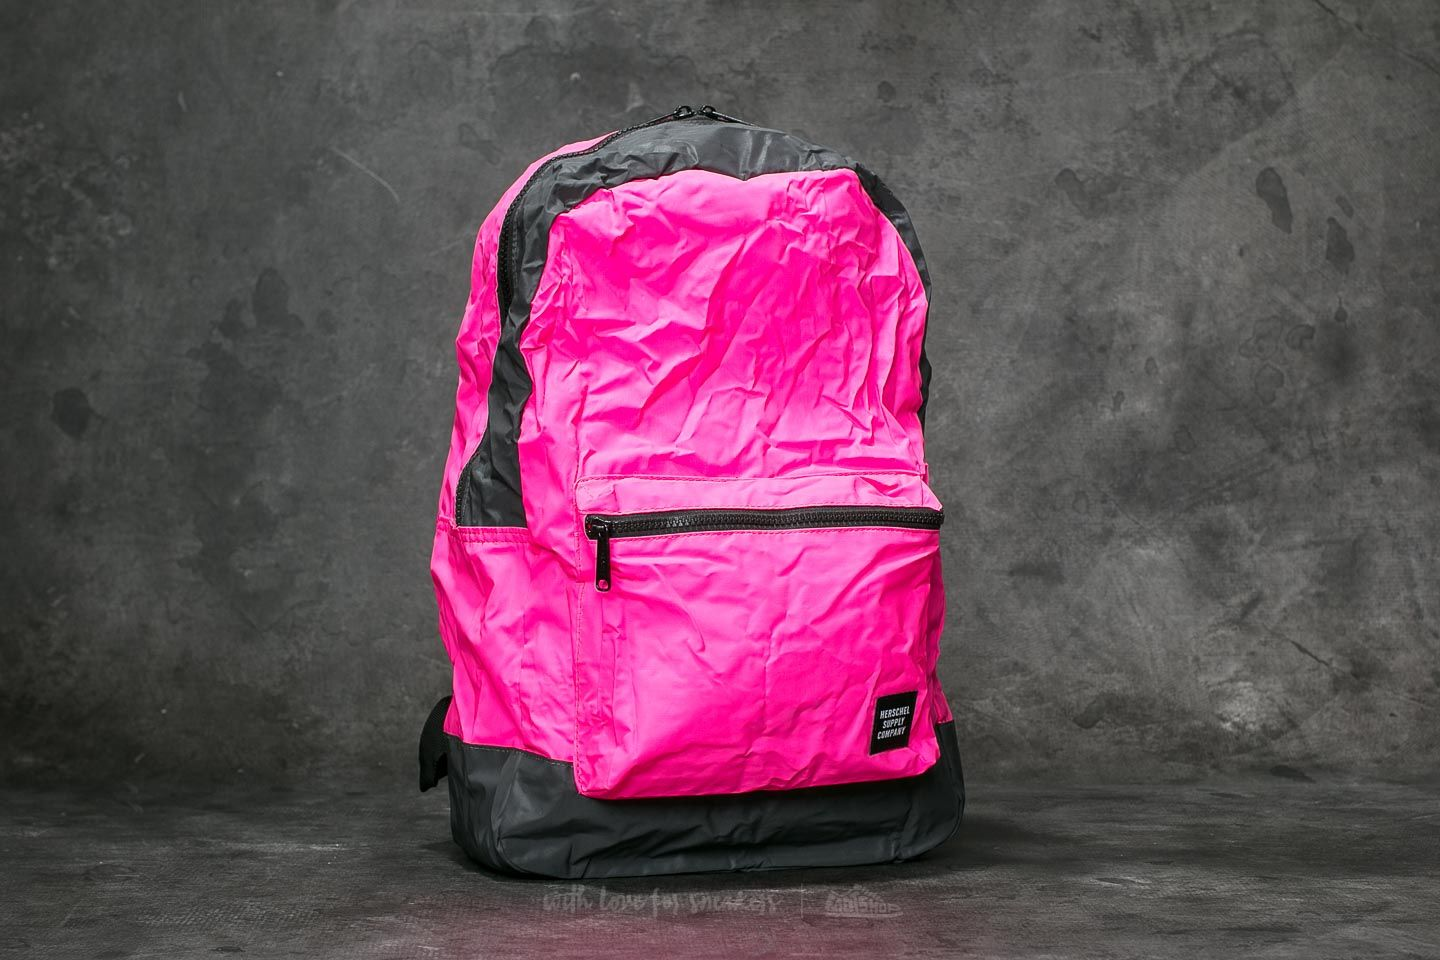 3579ec143615 Herschel Supply Co. Daypack Backpack Neon Pink  Black Reflective at a great  price 23